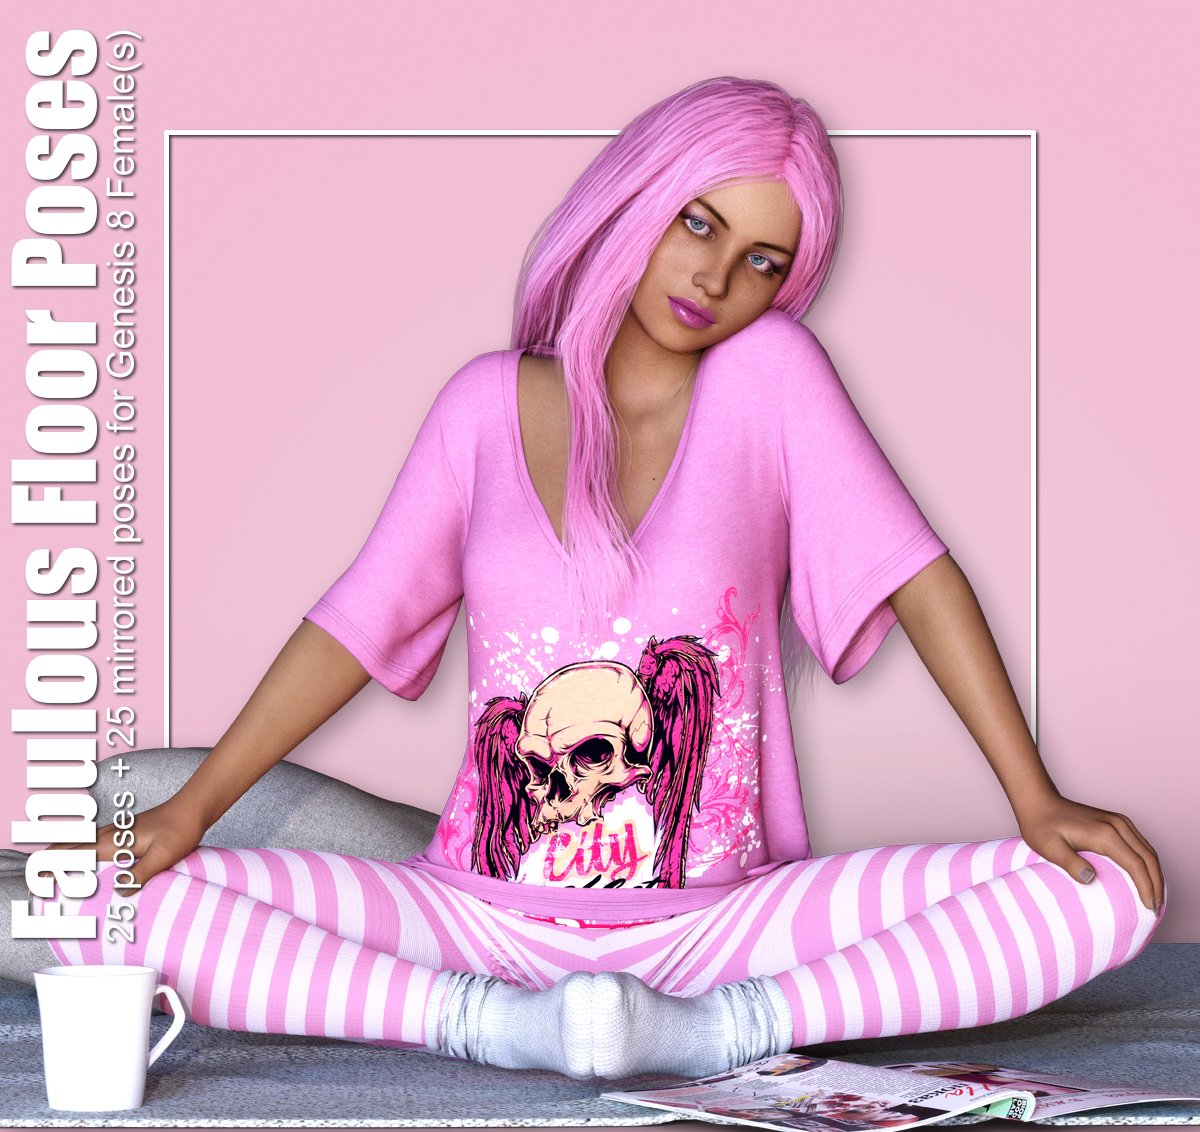 Fabulous Floor Poses for G8F by creativechaos